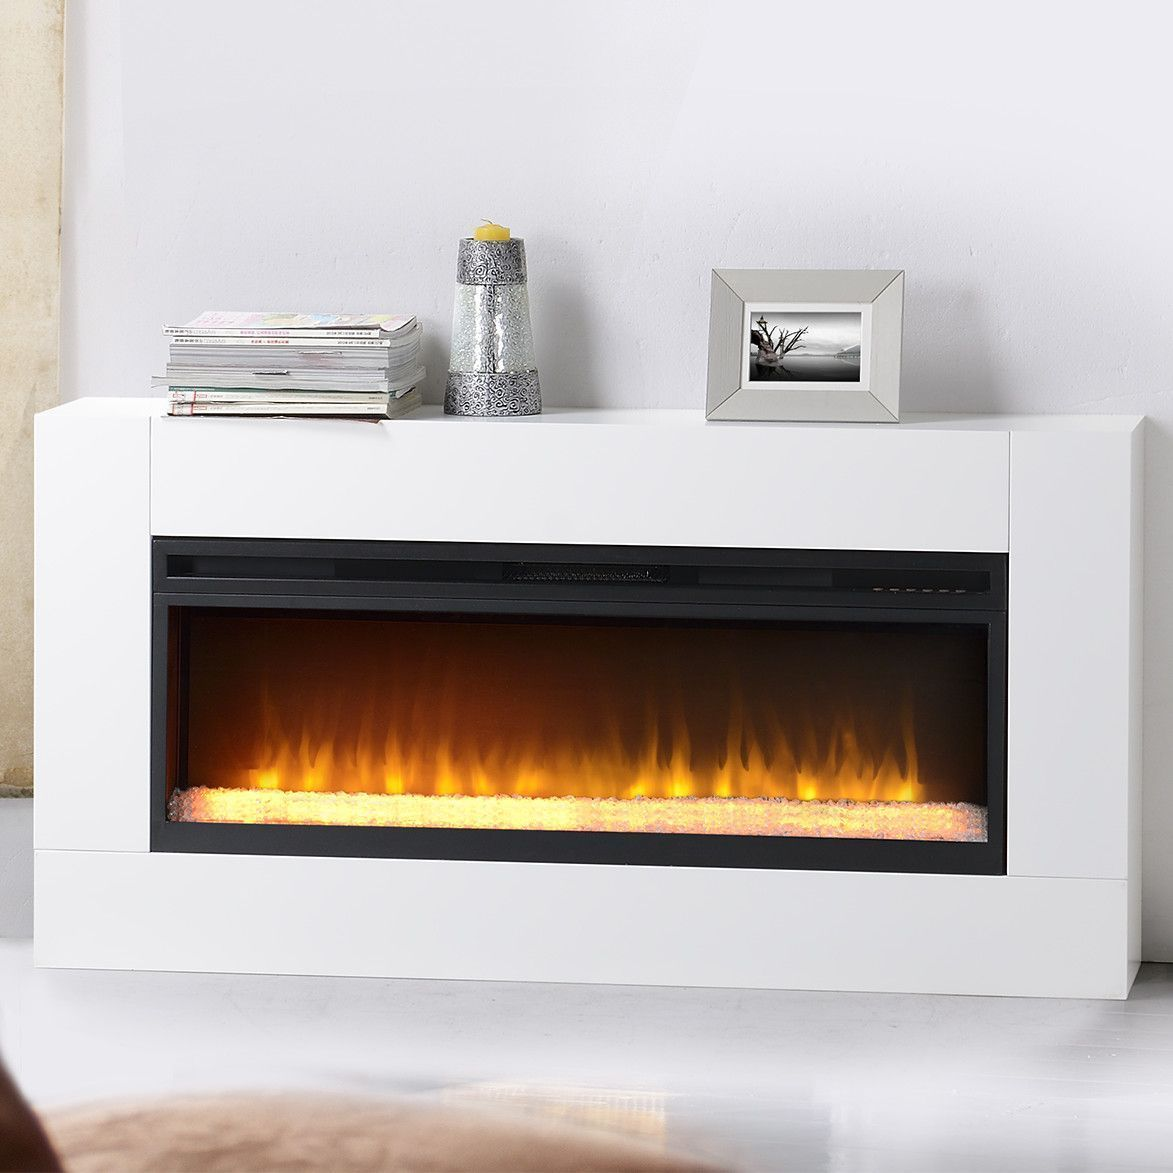 Best No Cost Electric Fireplace Freestanding Thoughts Features 42 Widescreen Electric In Freestanding Fireplace Large Electric Fireplace Electric Fireplace